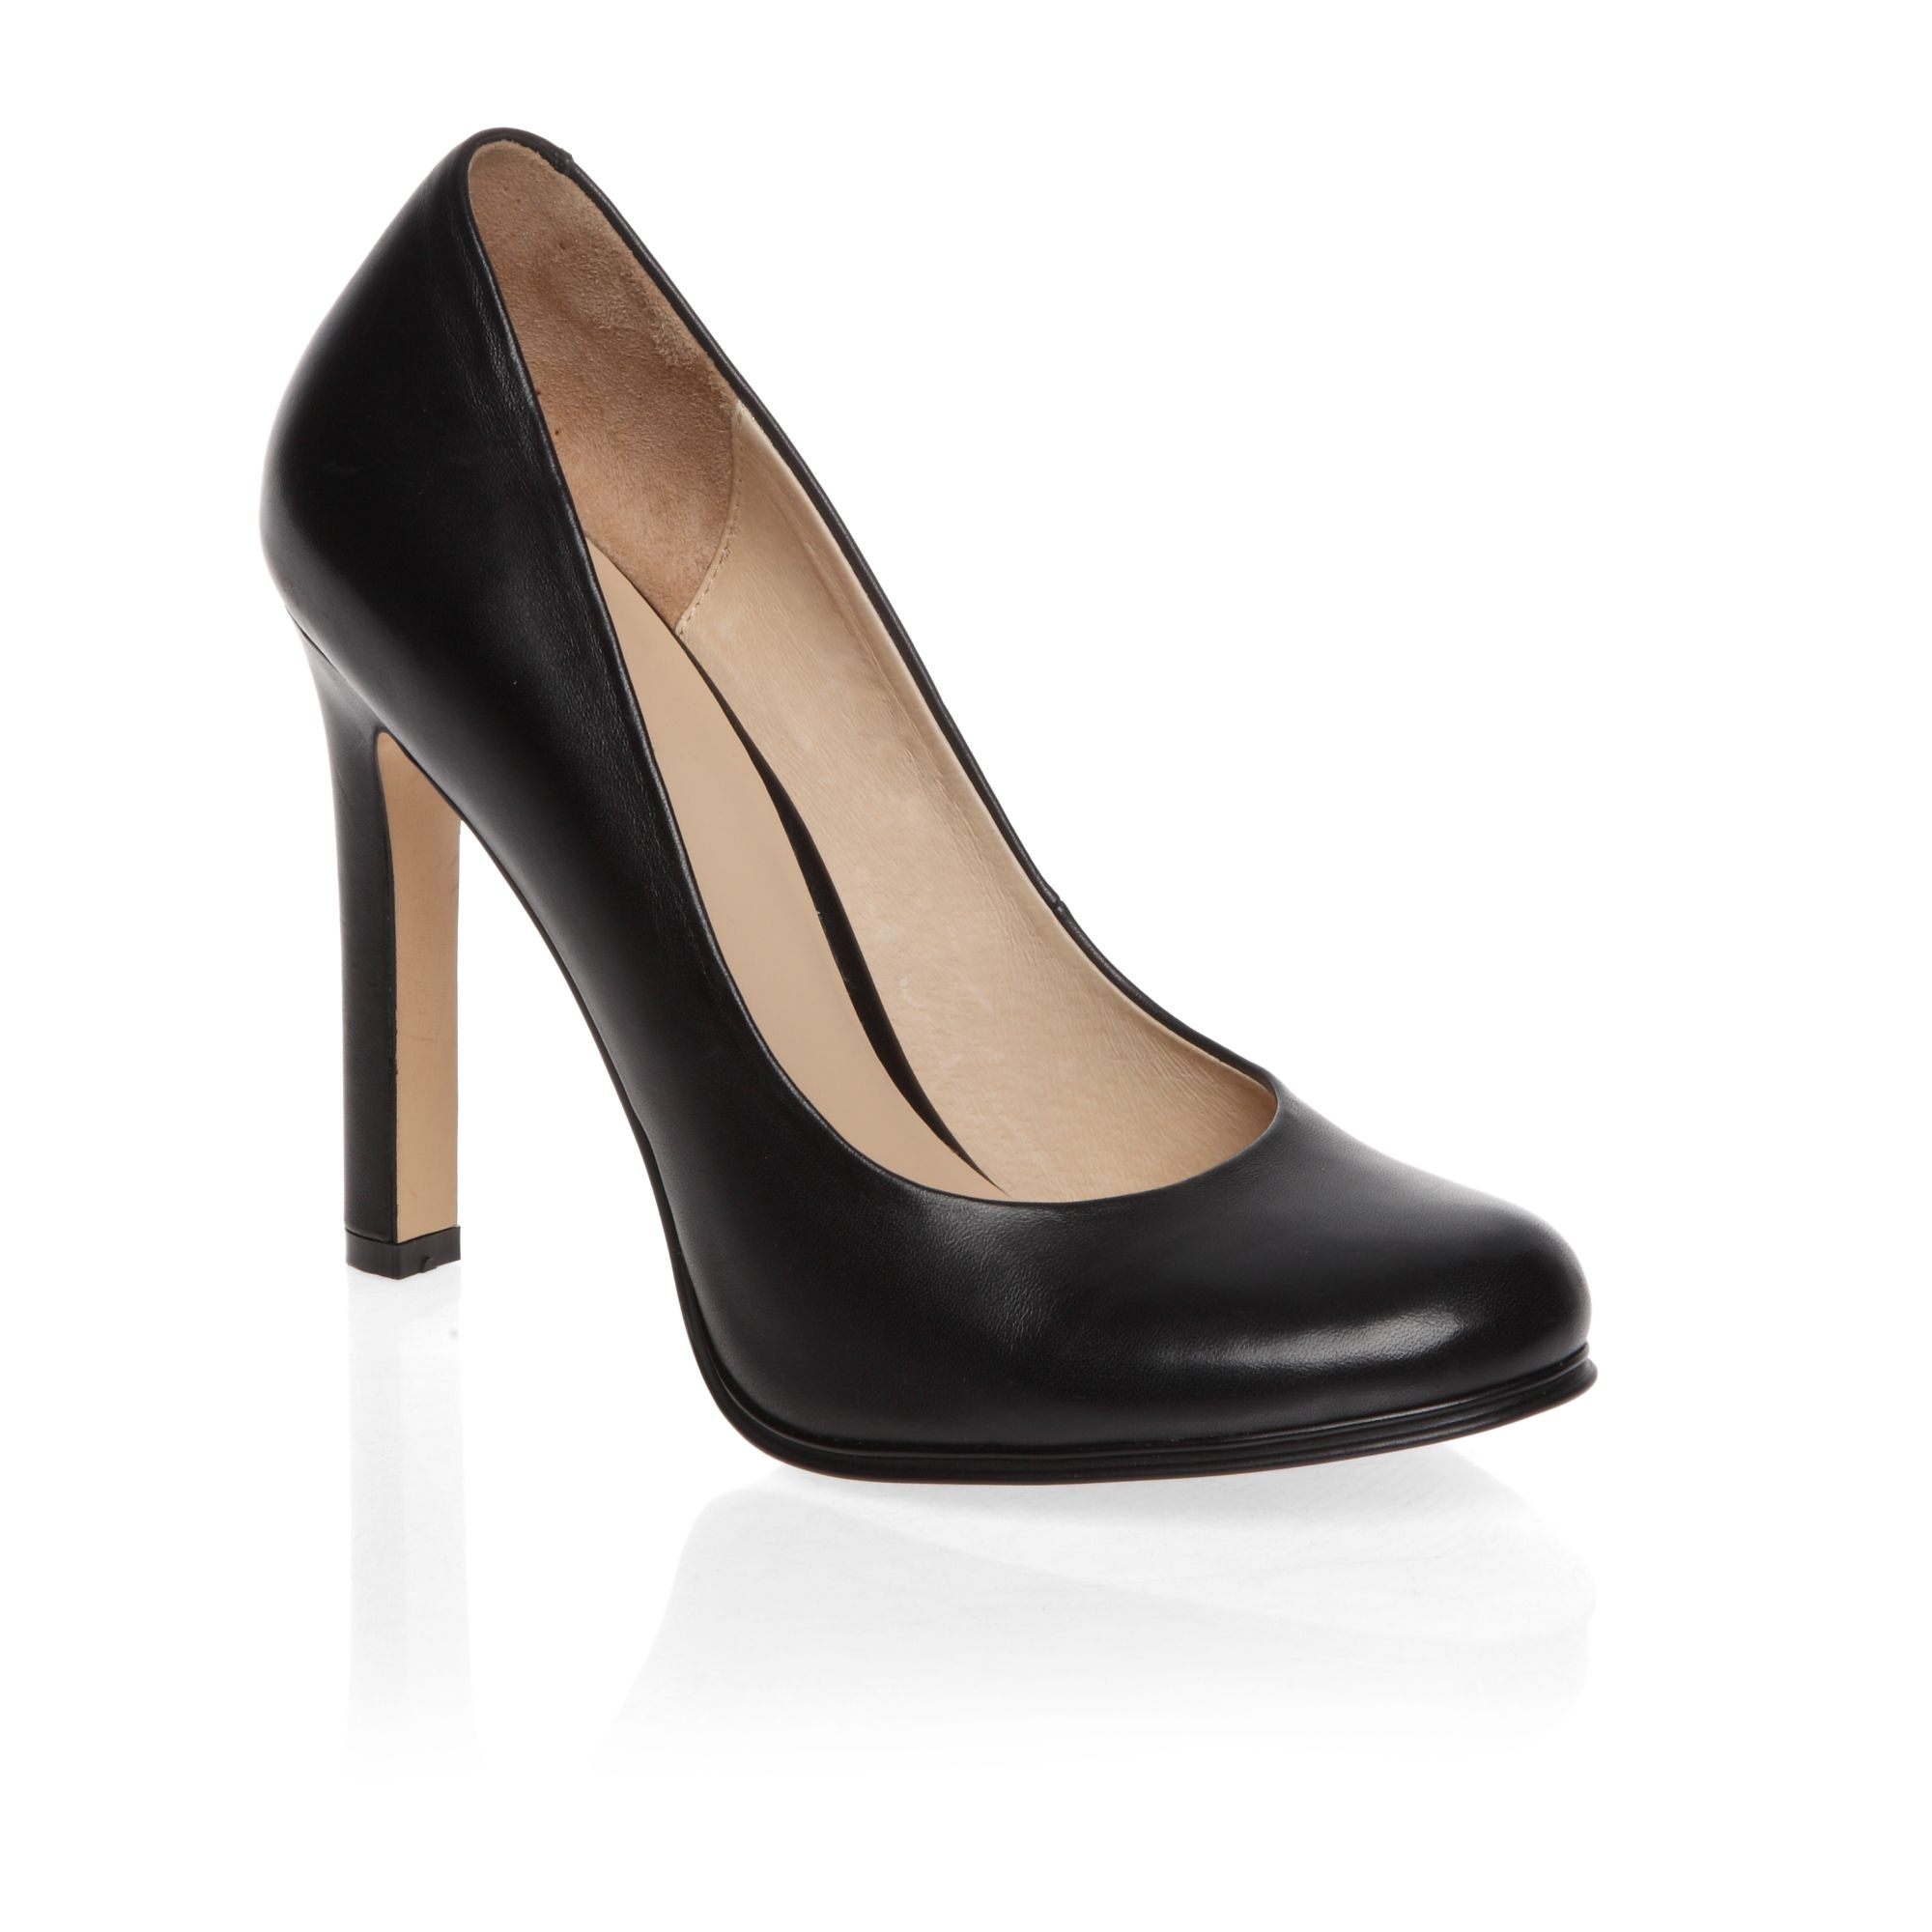 Round toe block heeled court shoes